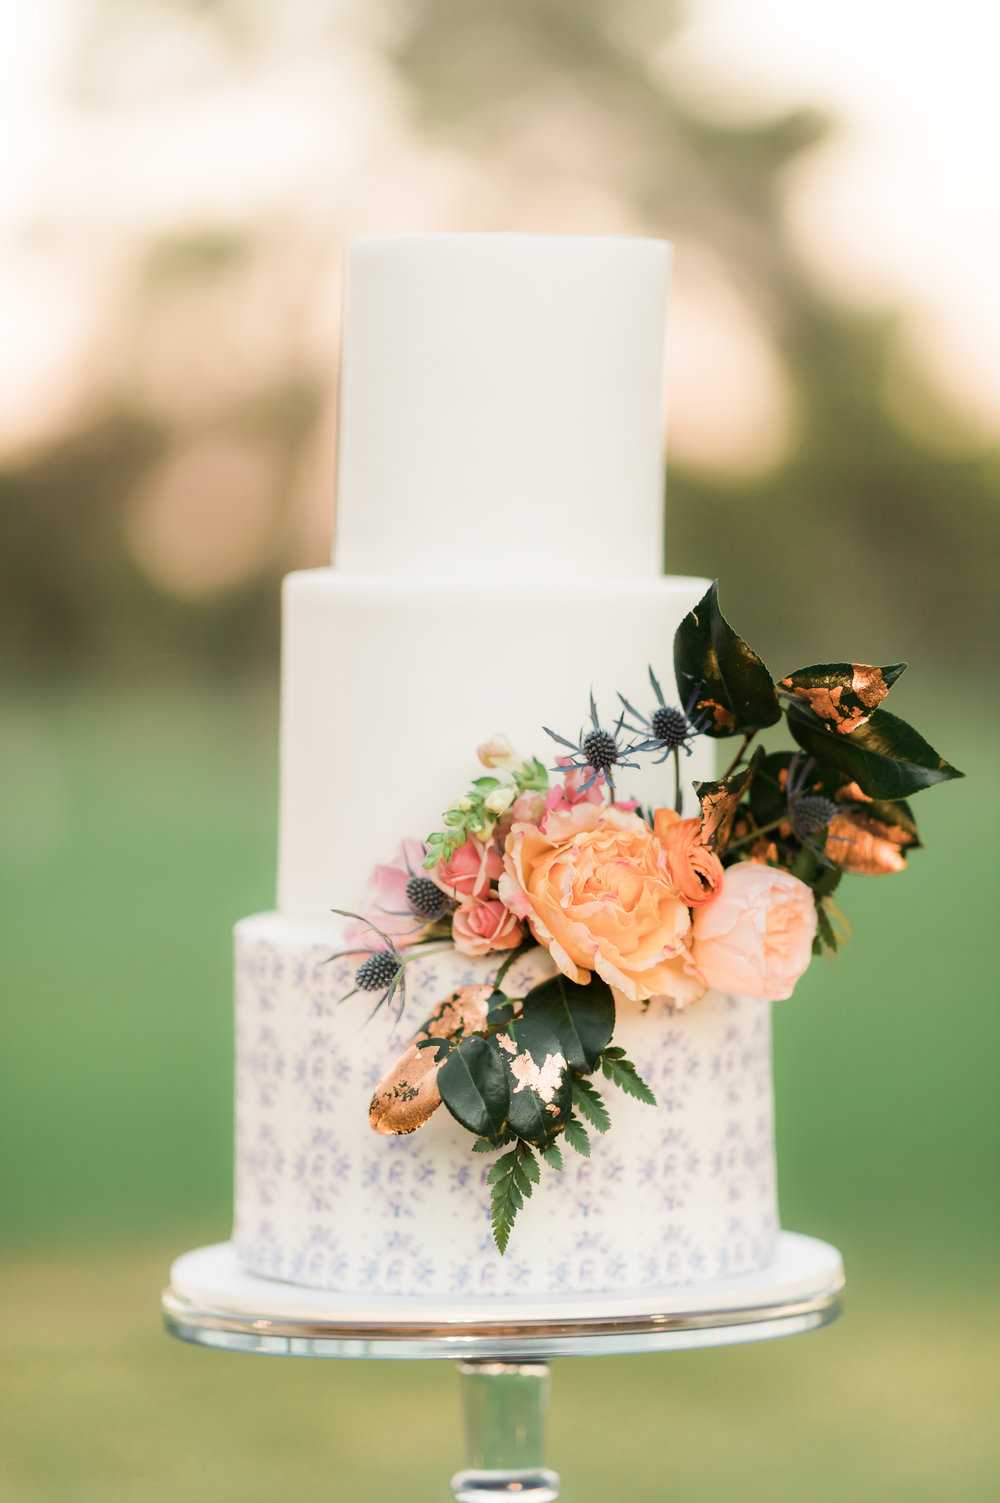 Private Estate Wedding in Phoenix - White Wedding Cake with Blush and Blue Floral Accents